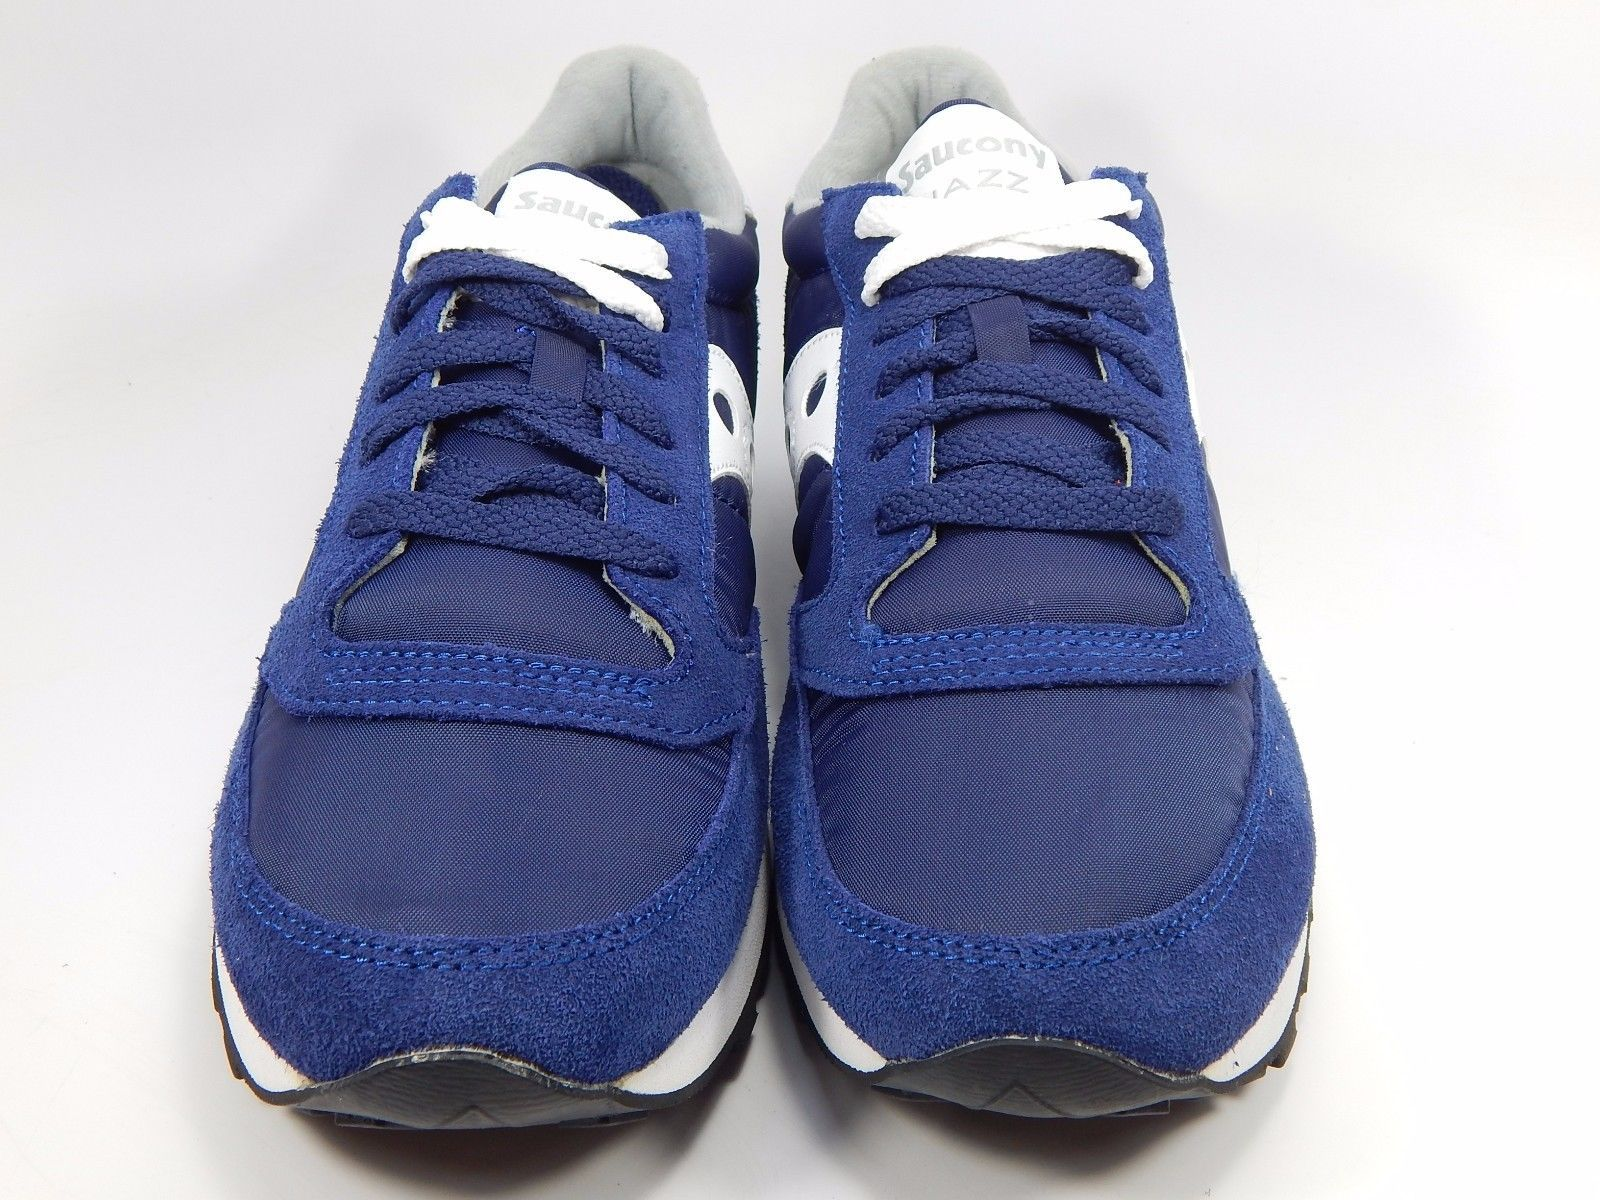 Saucony Jazz Original Men's Running Shoes Size US 9 M (D) EU 42.5 Blue S2044-356